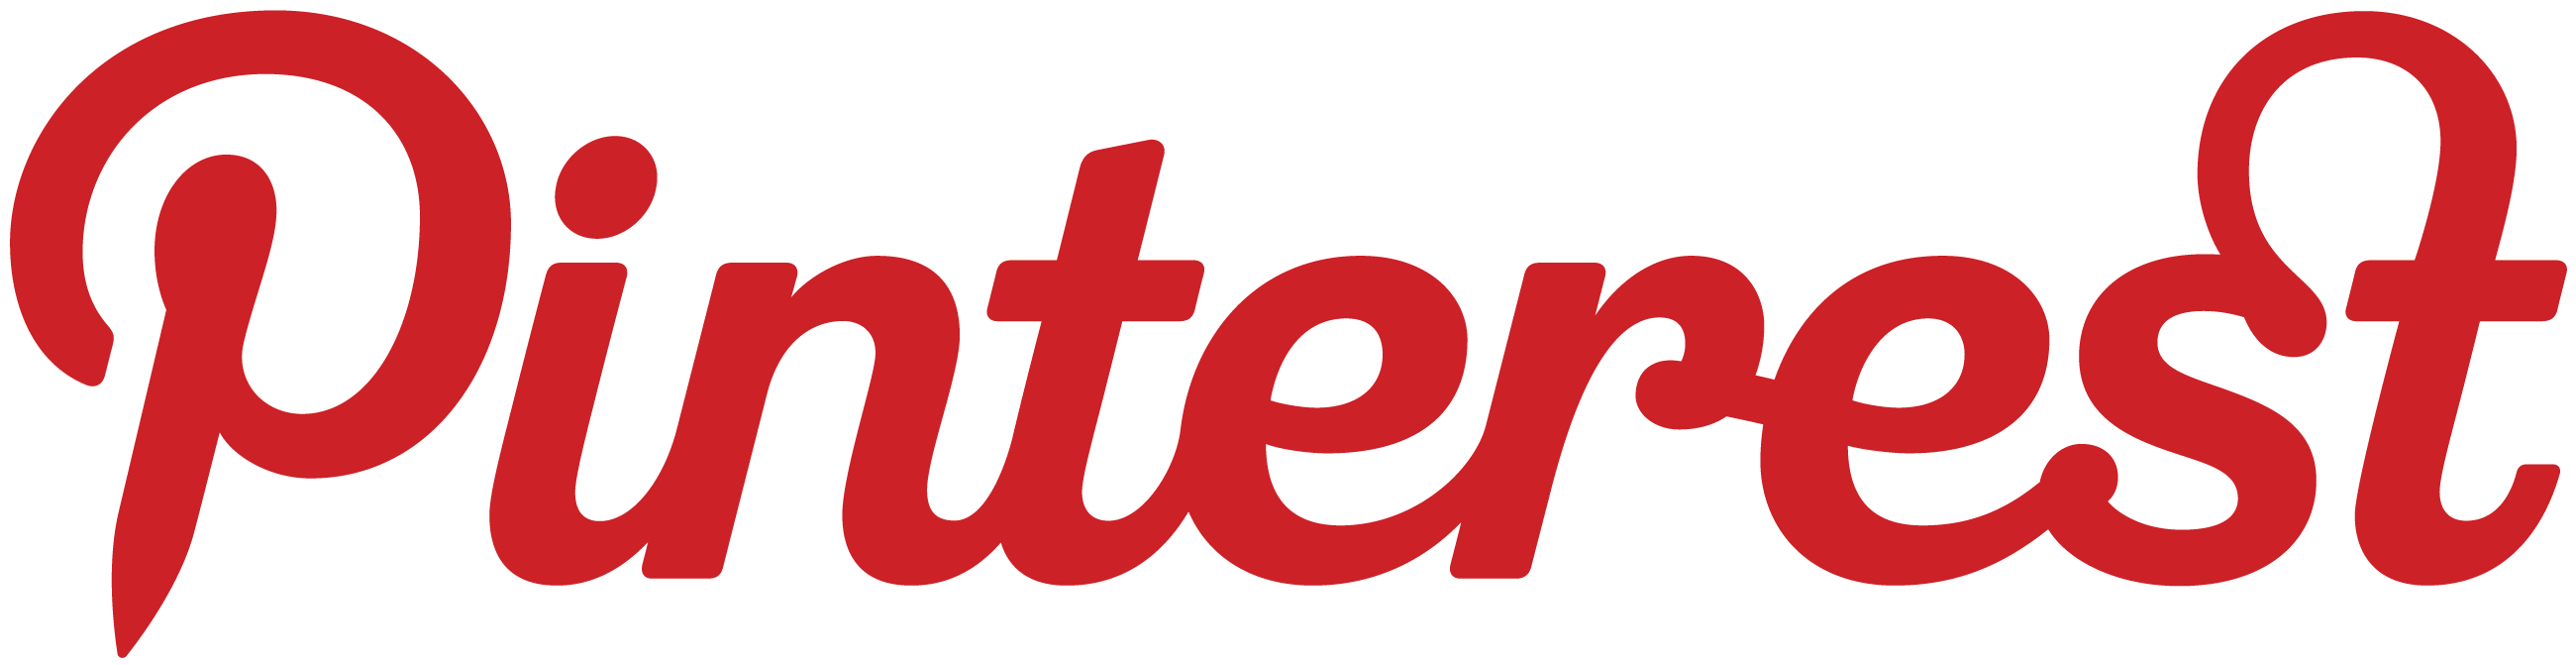 pinterest_logo_red copy